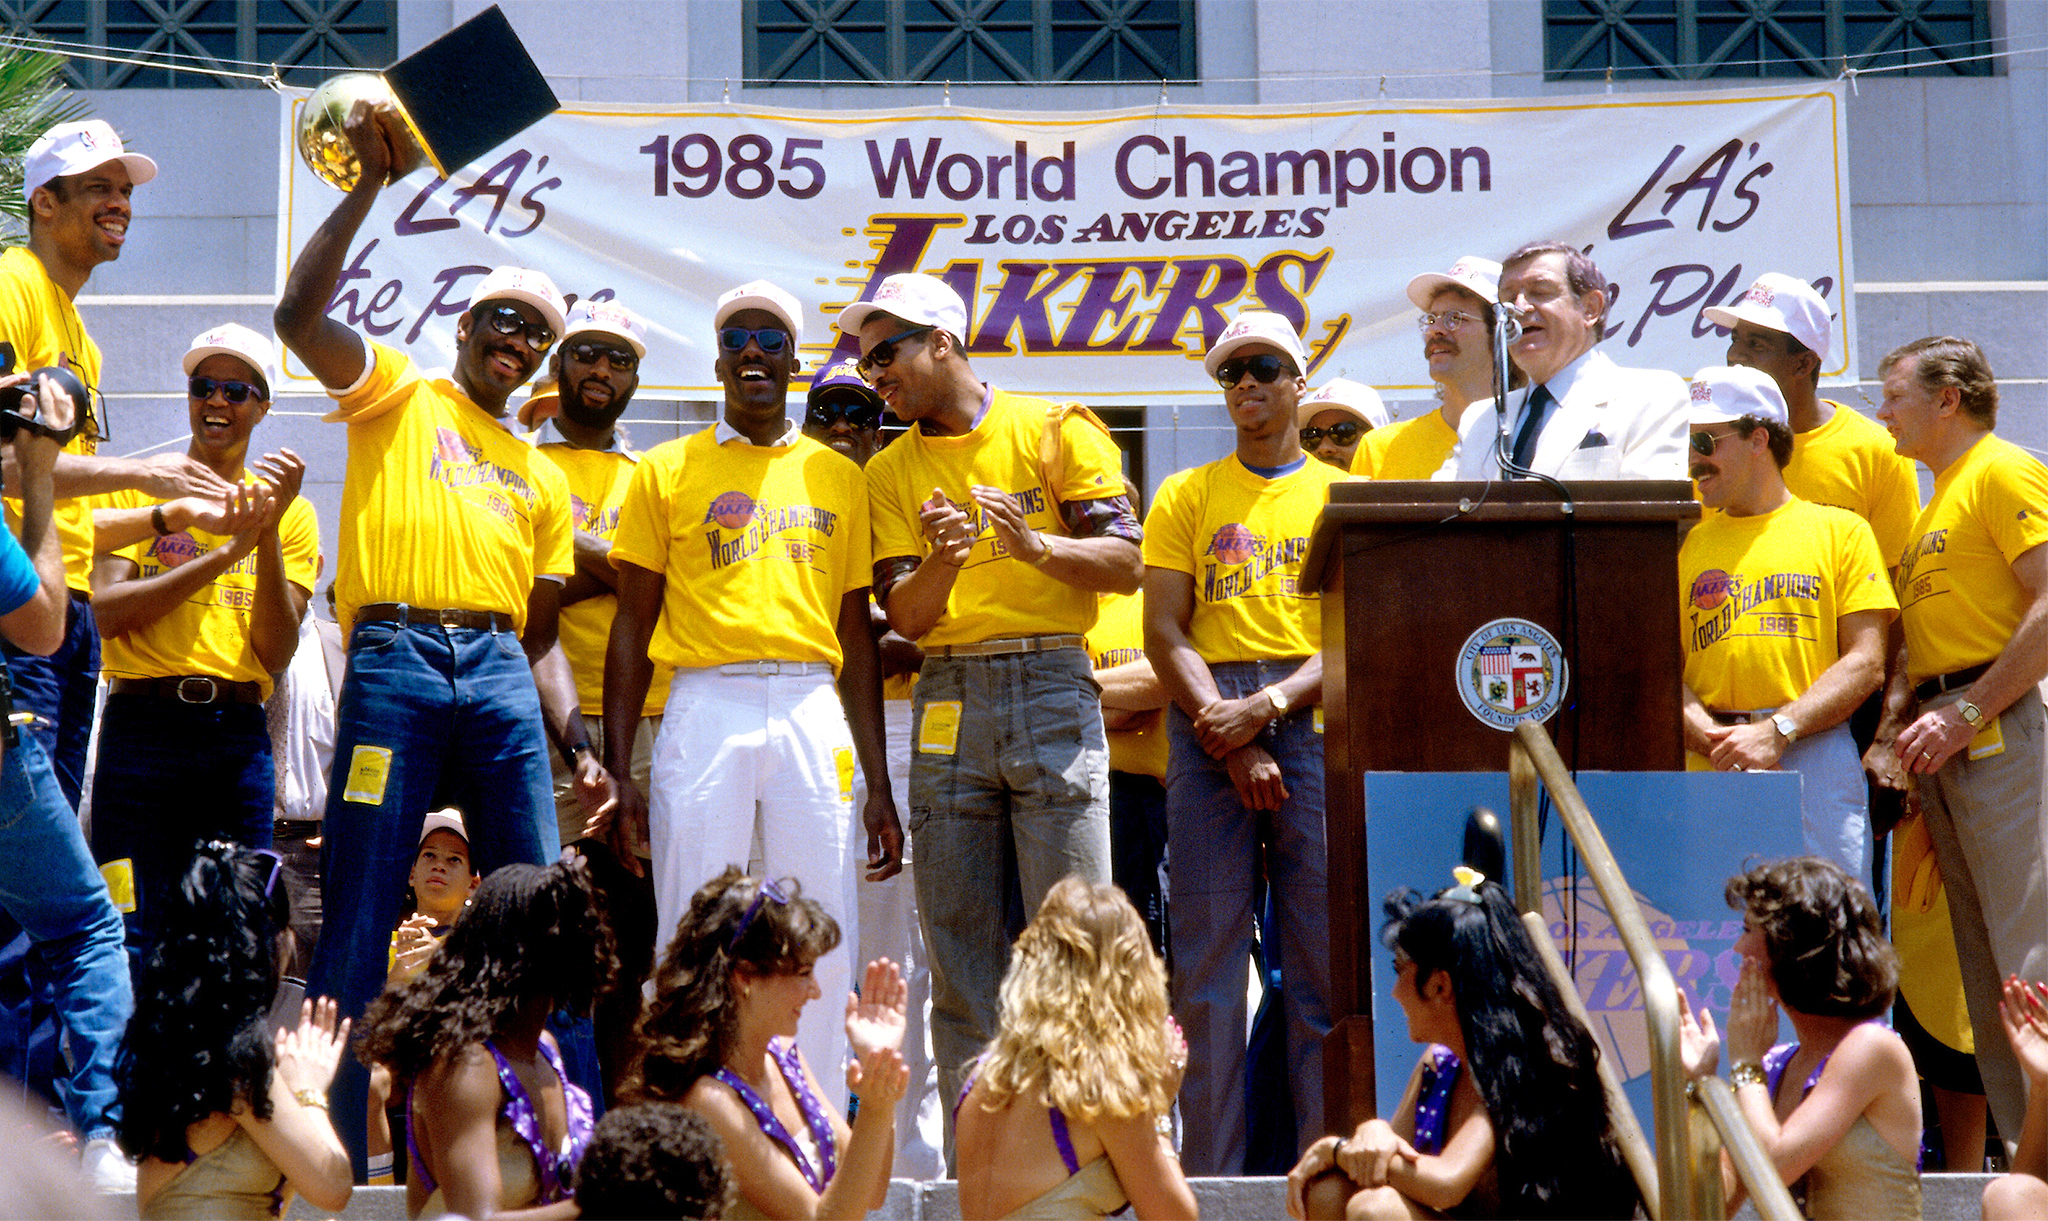 7. 1985 Los Angeles Lakers - Top 20 Greatest NBA Teams Ever - ESPN